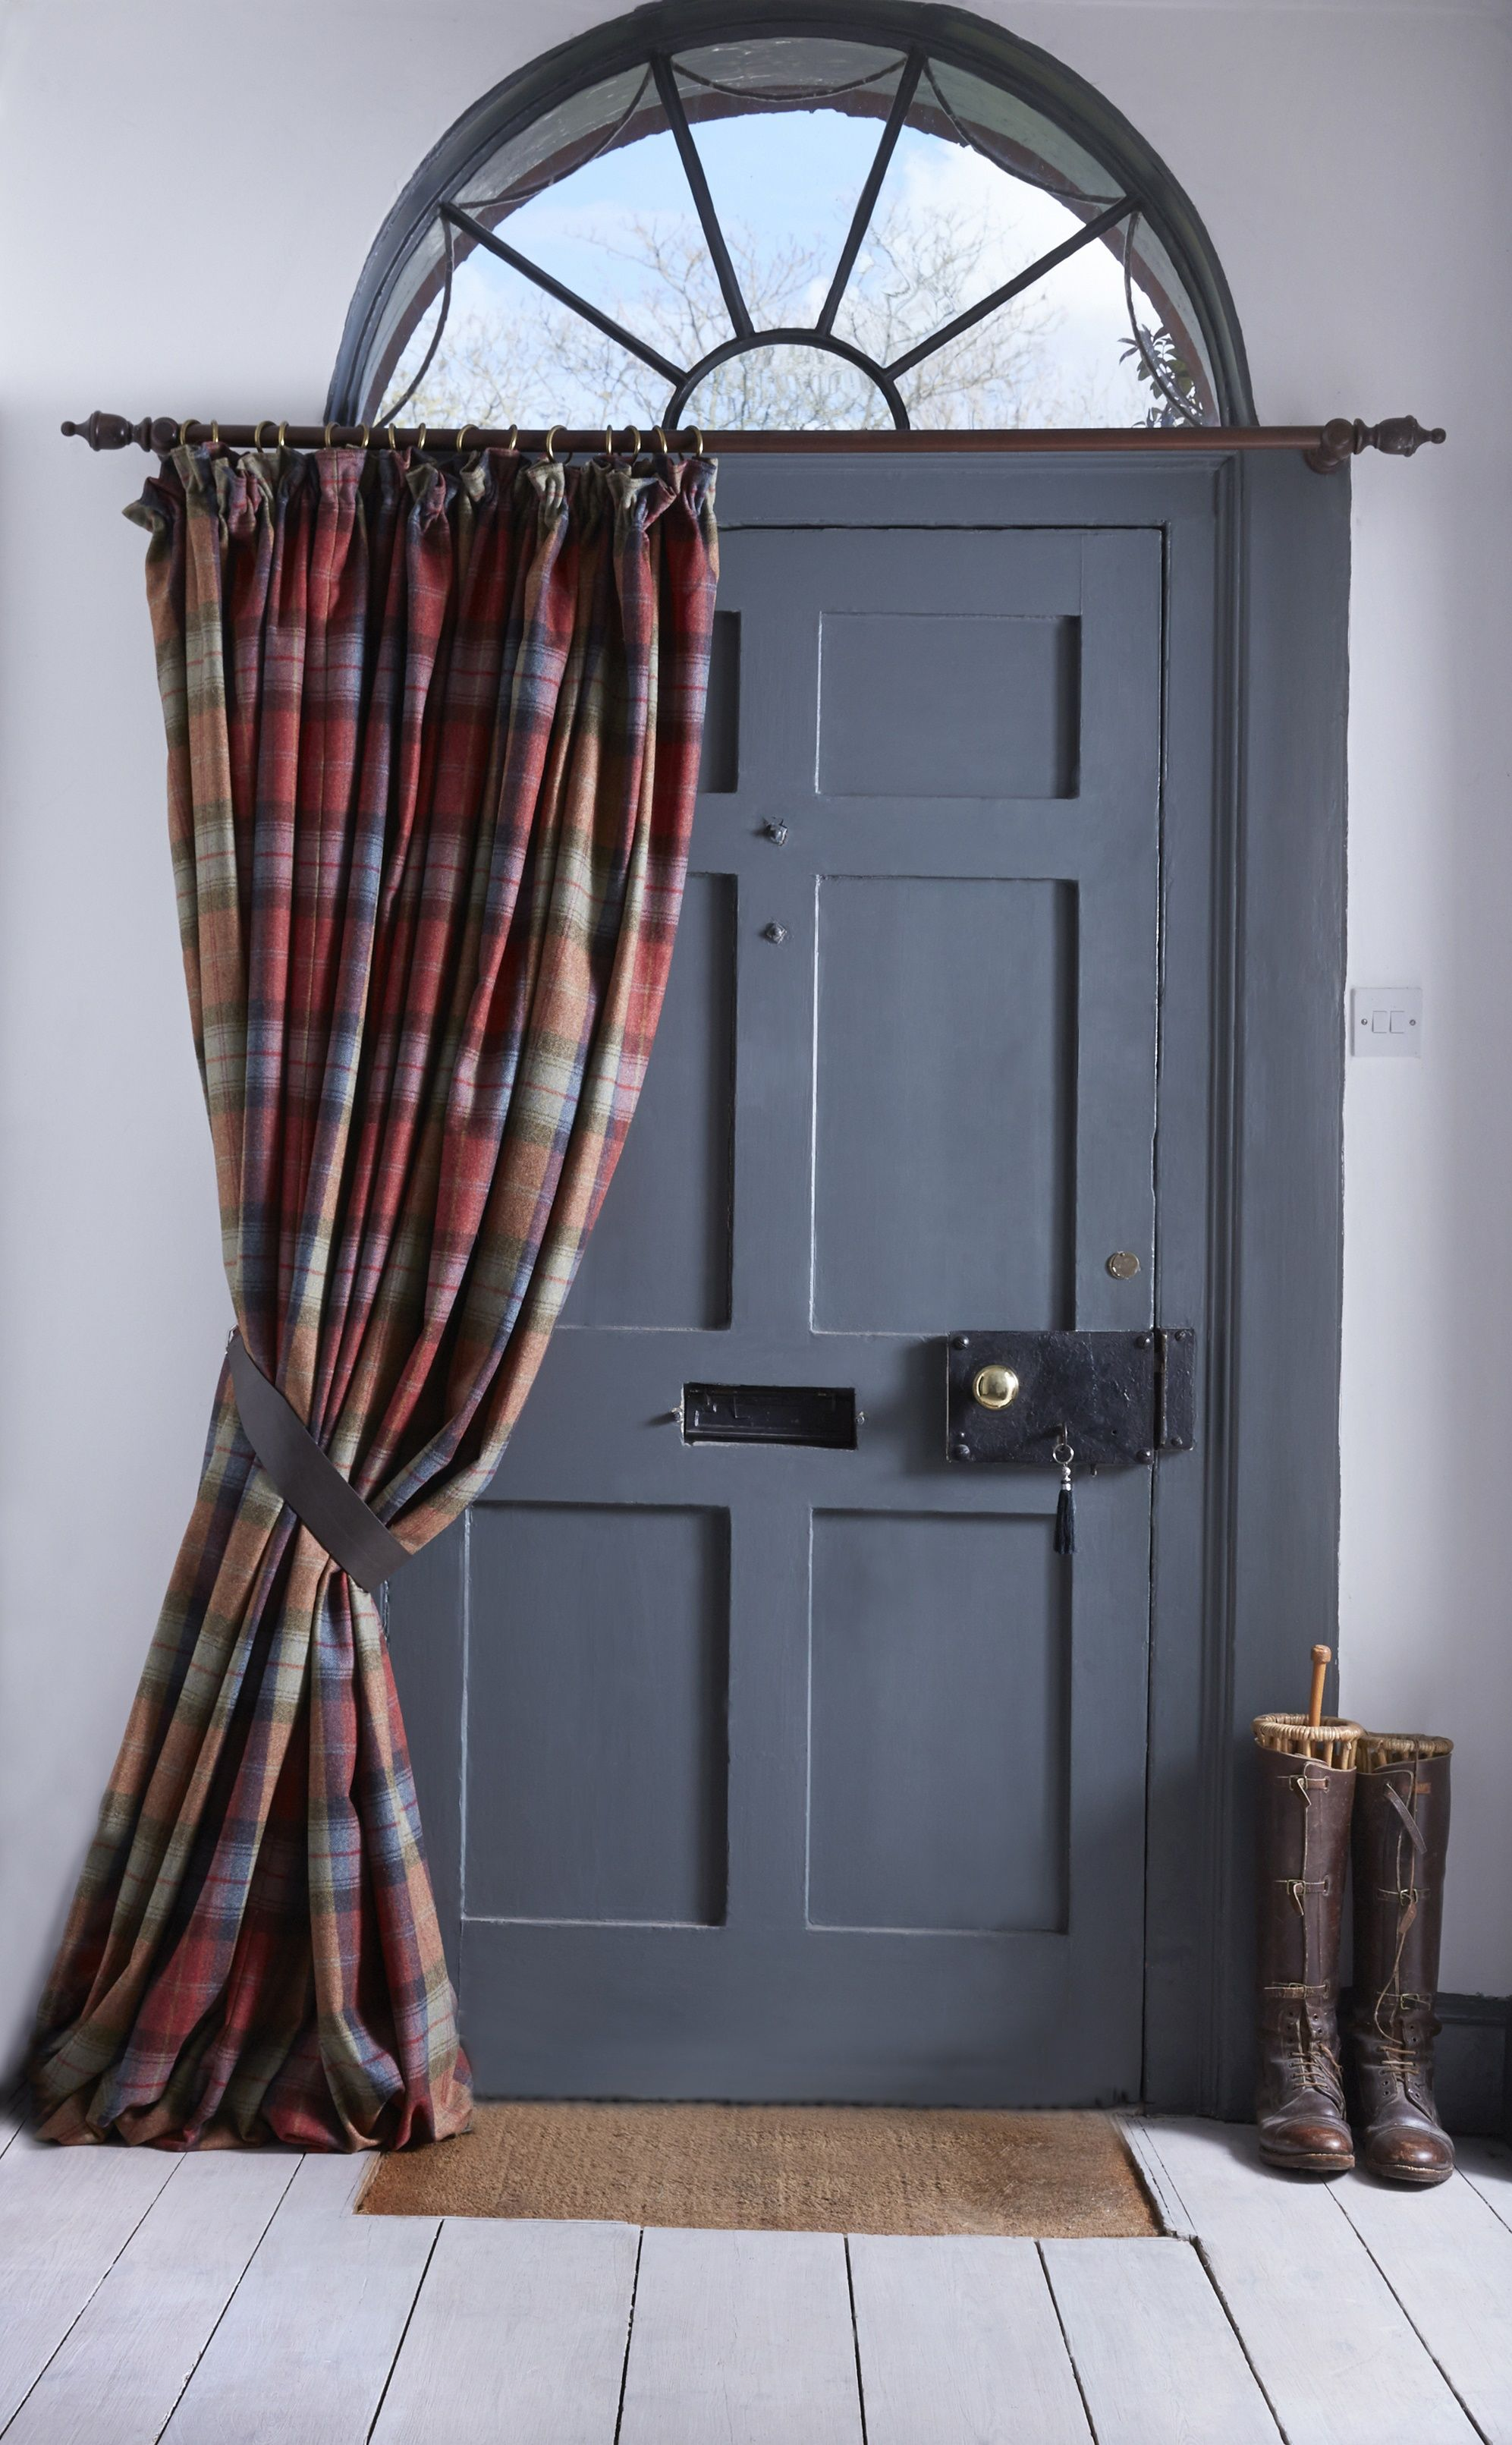 The Perfect Addition To A Country Home Doorway Thermal Wool Door Curtain Complete With Leather Tieback Farrow Ball Down Pipe Grey Painted